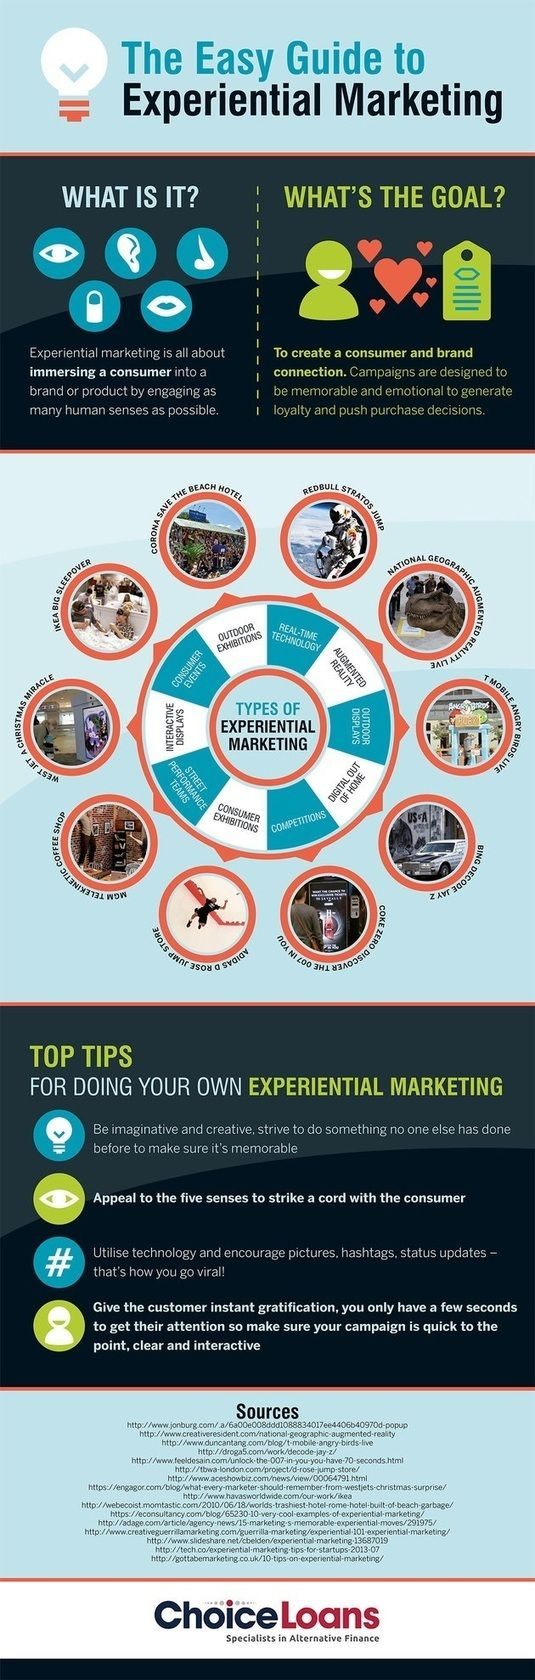 155 best Experiential Ideas images on Pinterest   Experiential ...